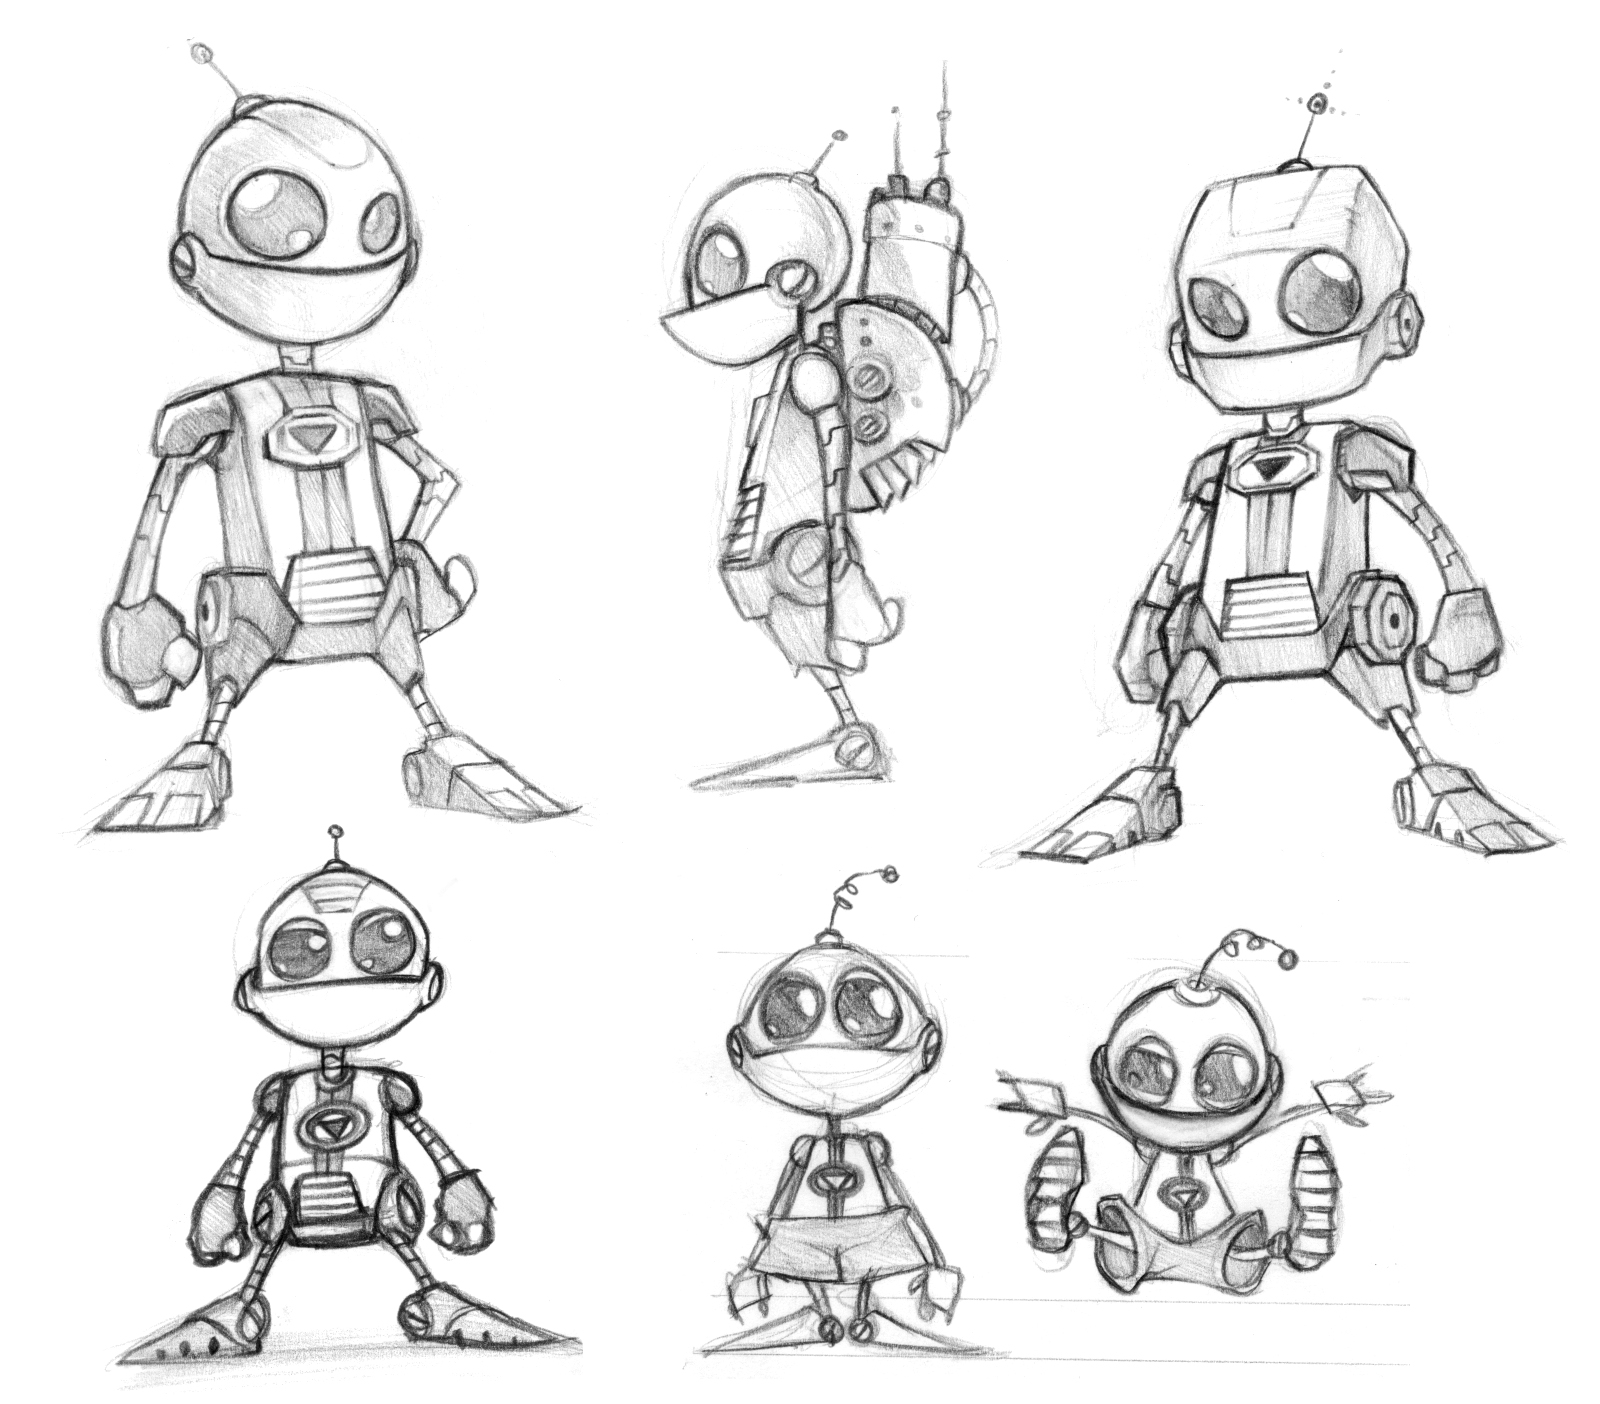 Character Conceptual Design : Ratchet clank years of concept art insomniac games